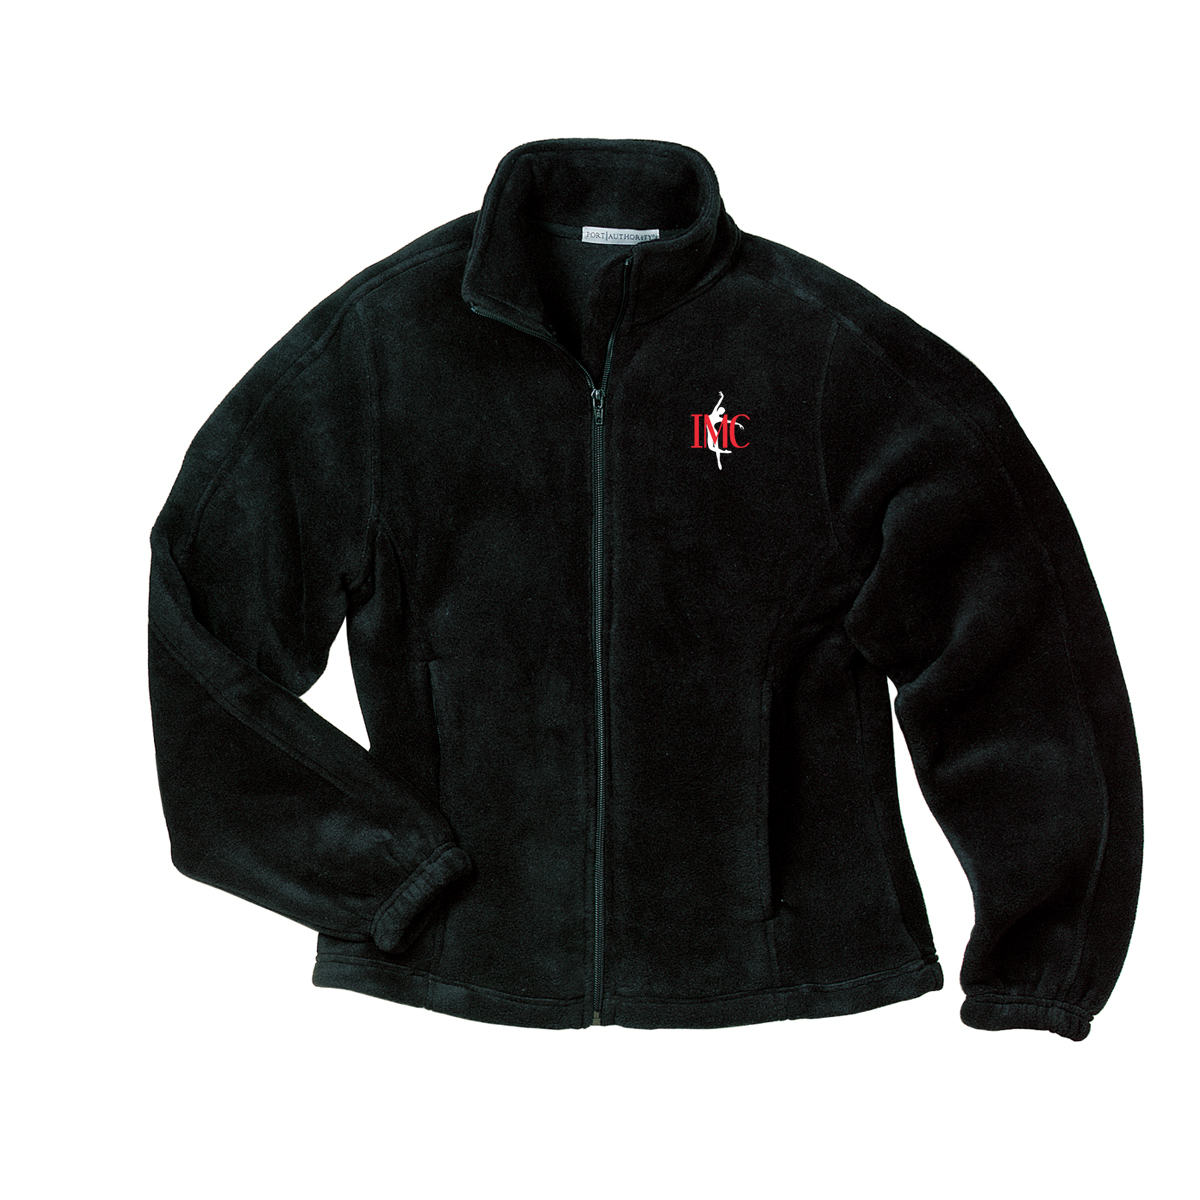 IMC - YOUTH FLEECE JACKET